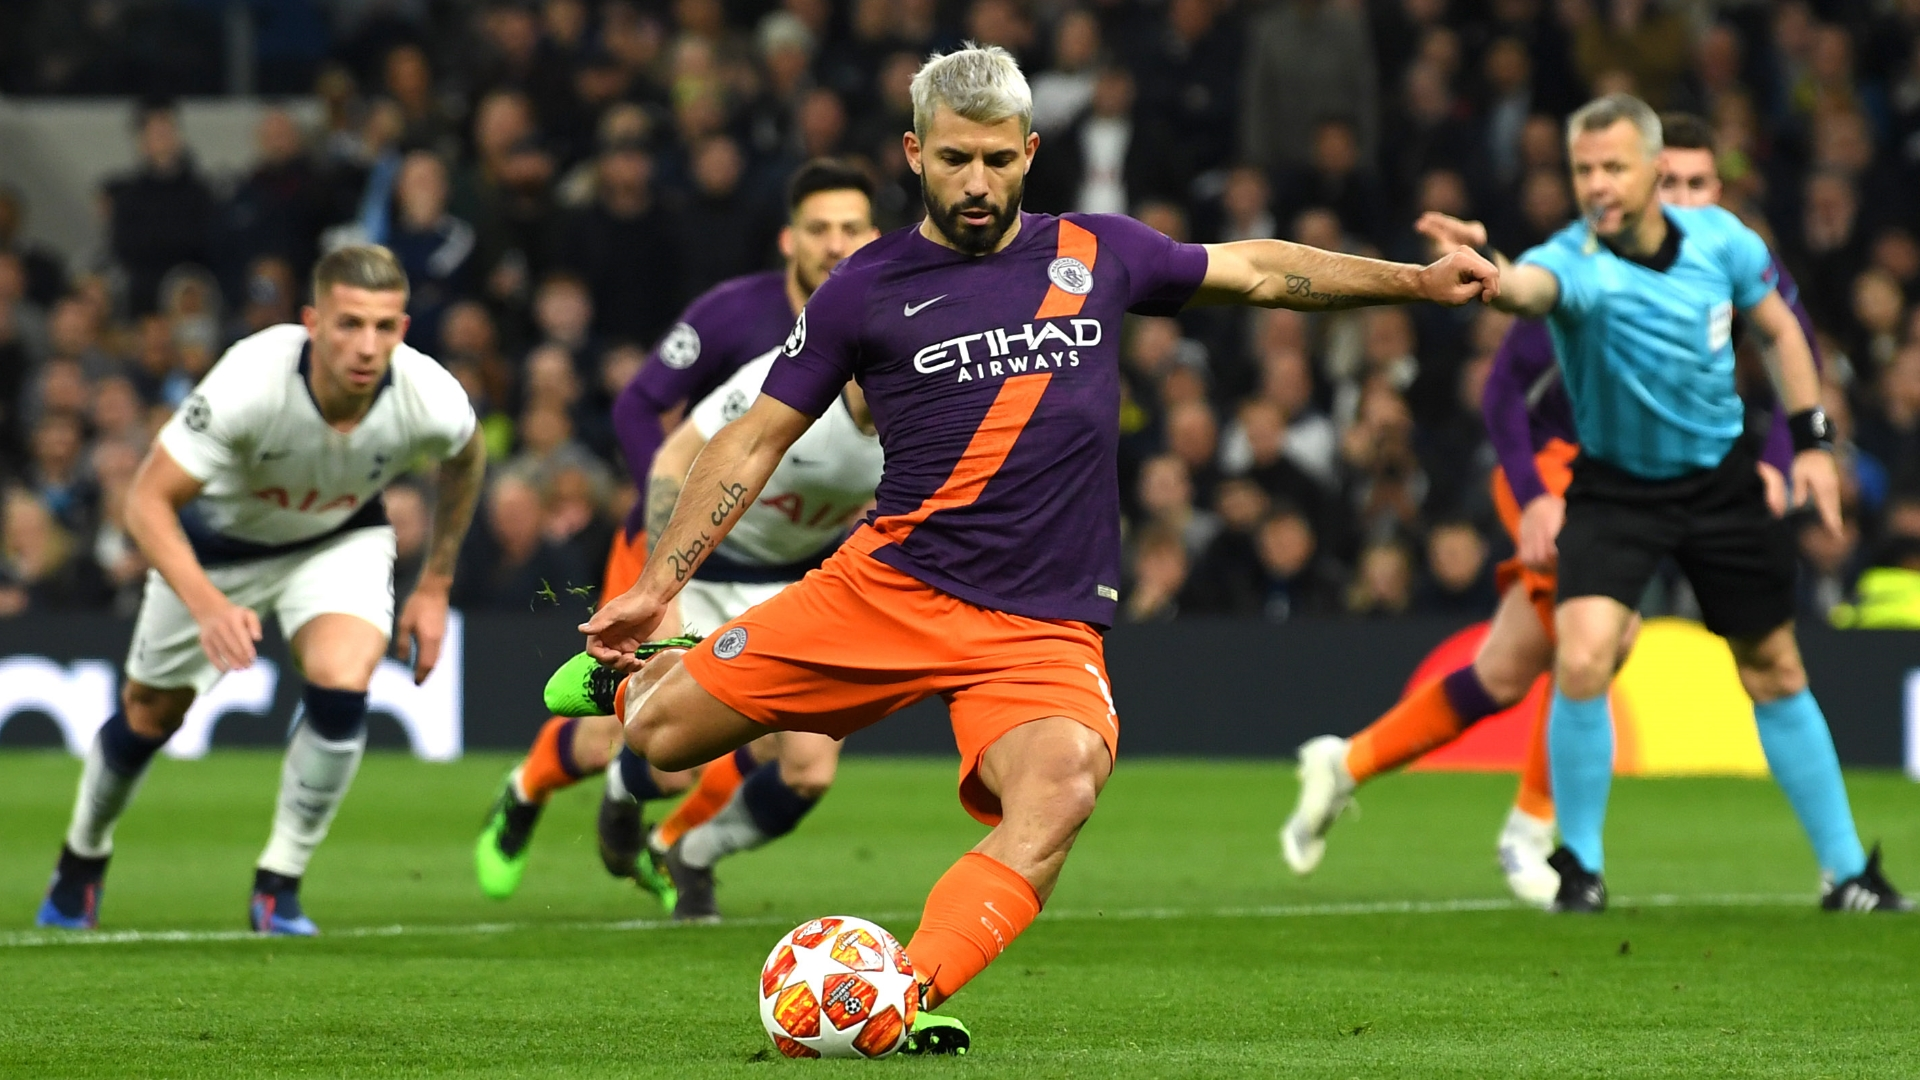 Sergio Aguero, Tottenham vs Man City, UCL 2018-19